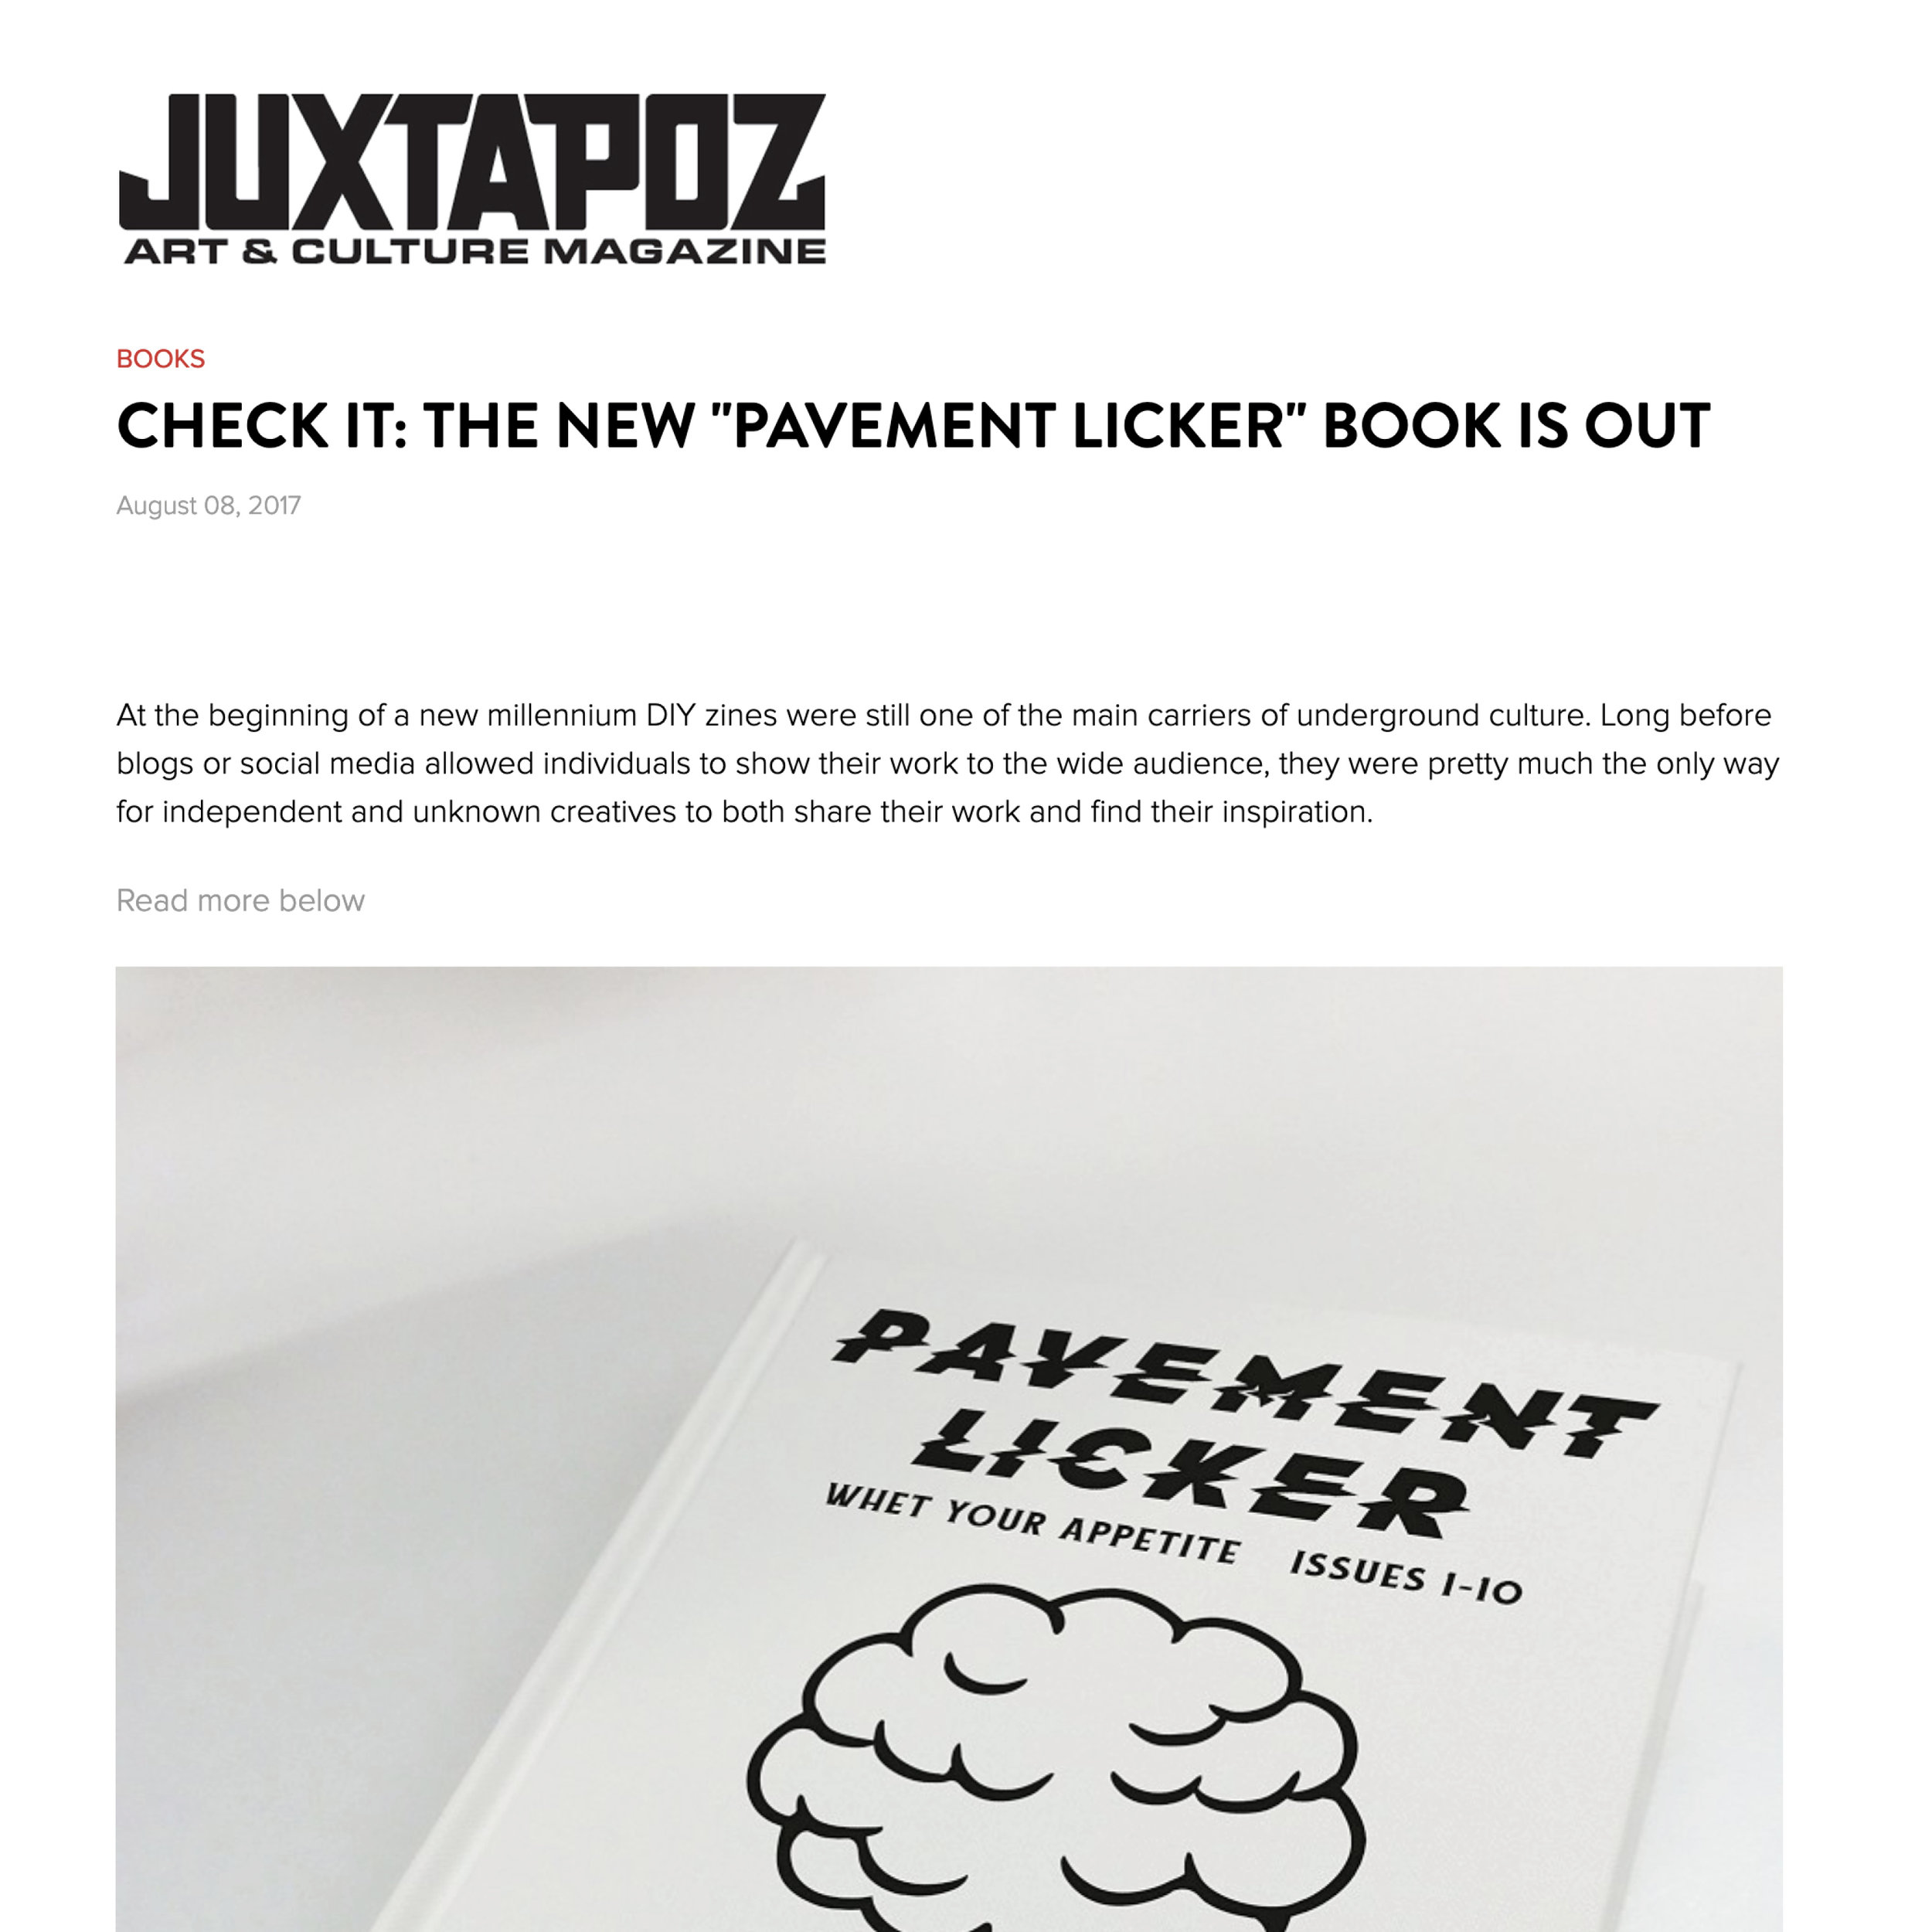 Pavement Licker book featured by Juxtapoz